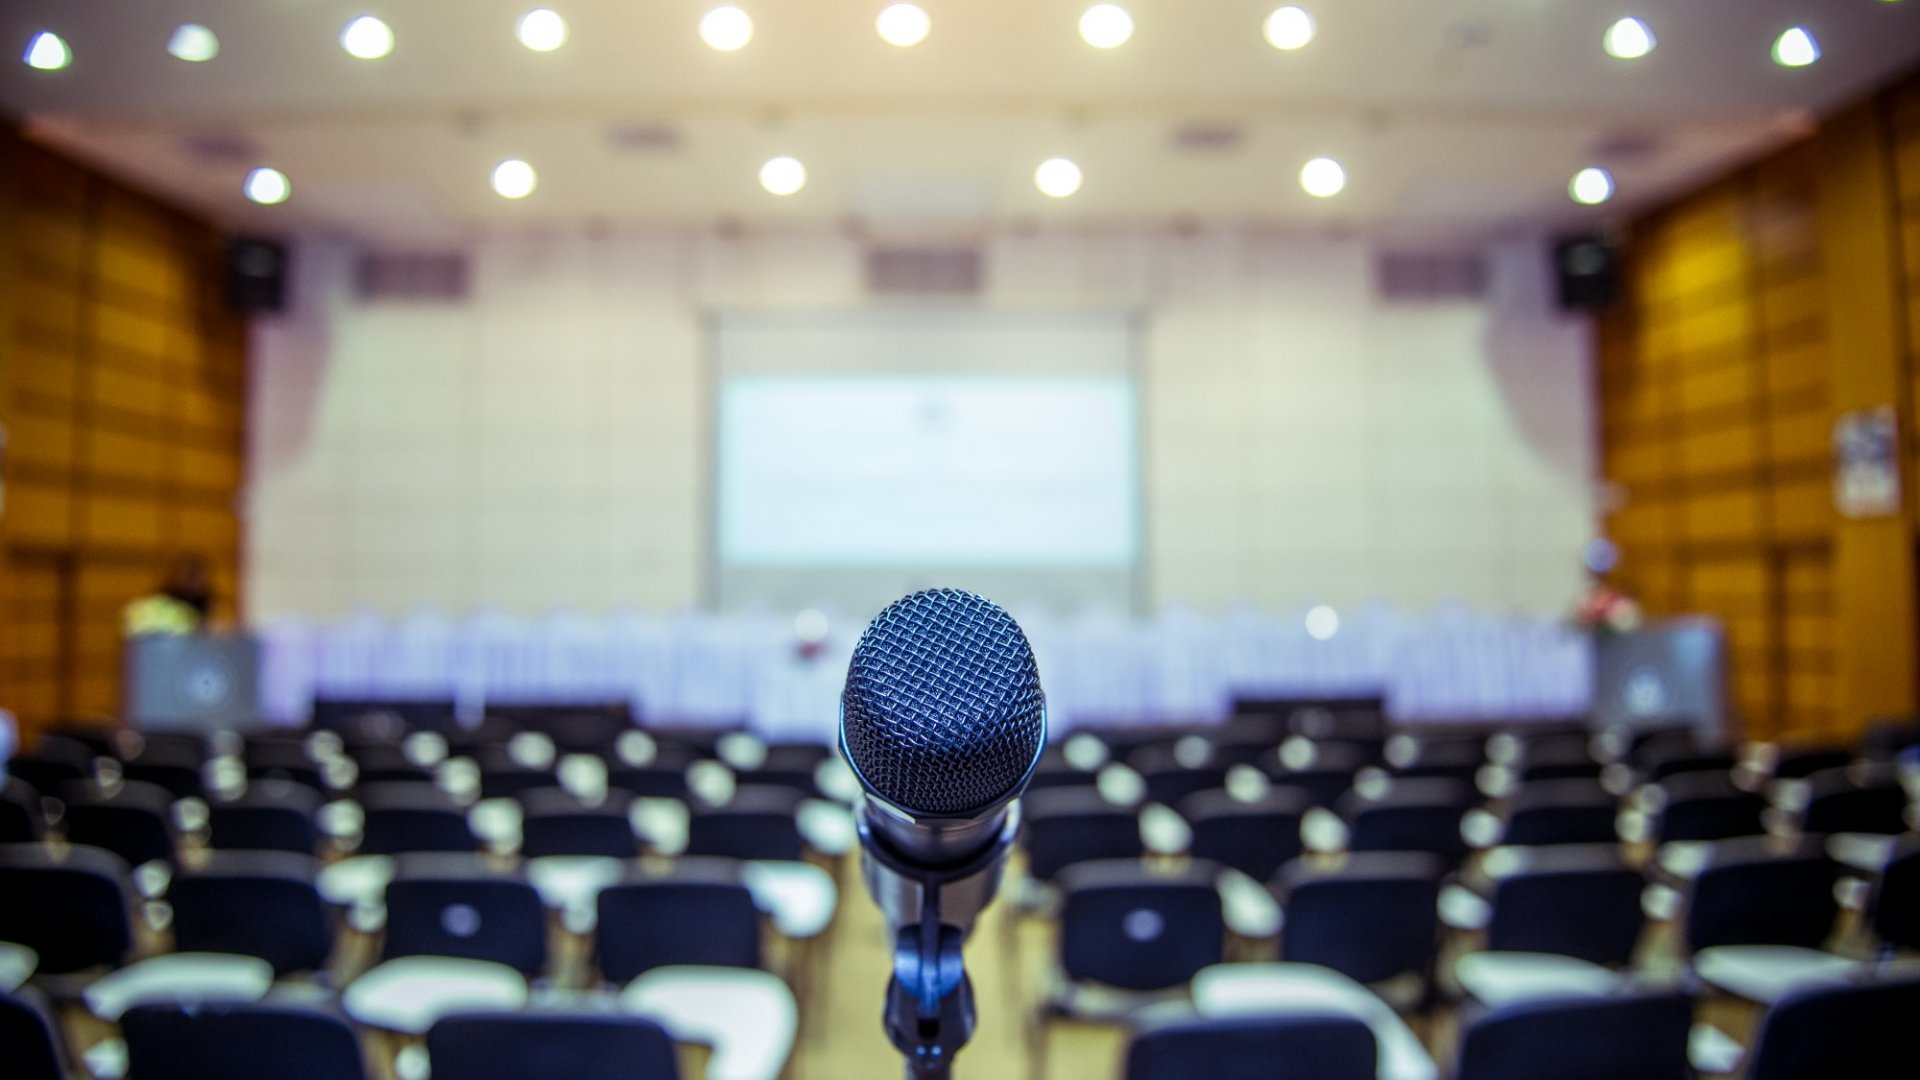 Want to Consistently Book Gigs as a Speaker? Add These 3 Things toYour Marketing